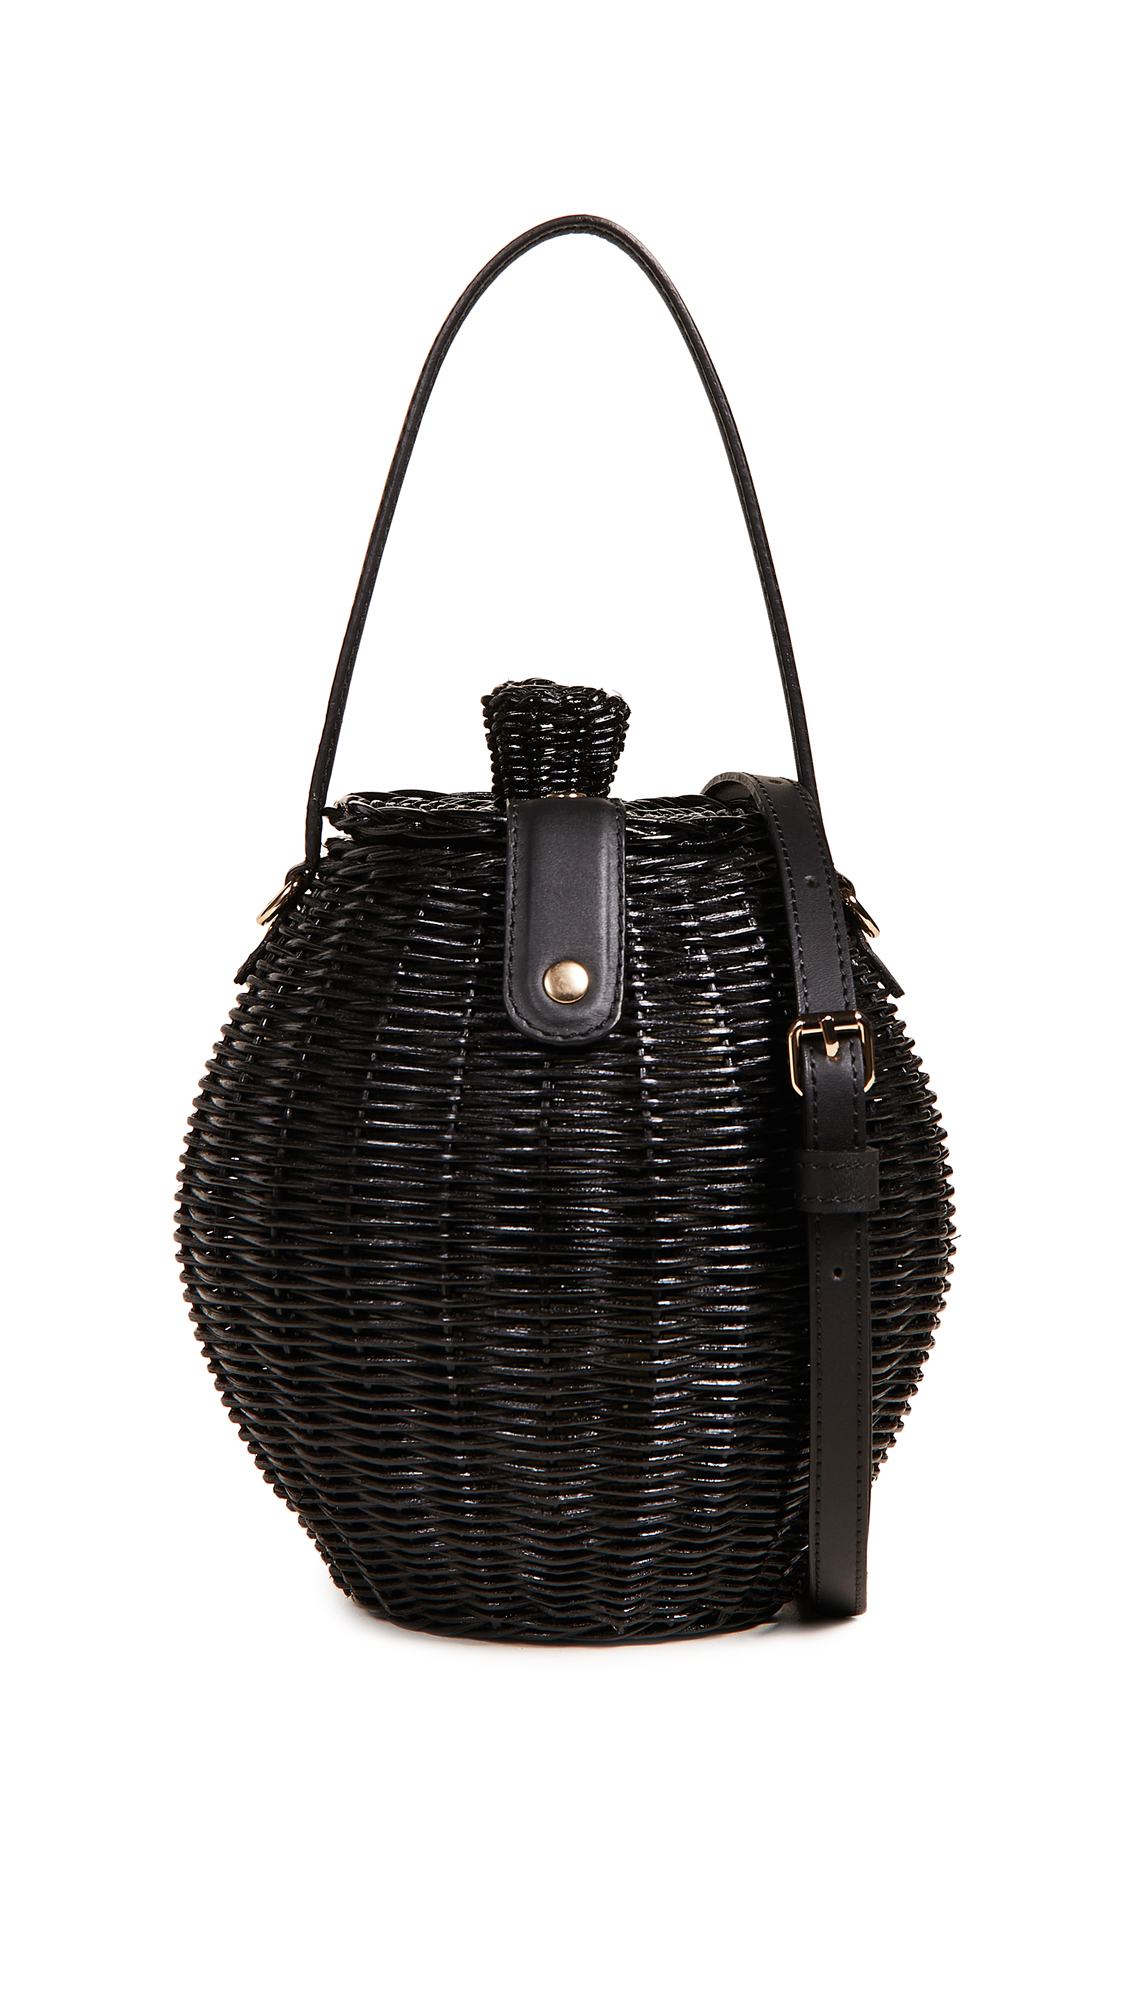 Ulla Johnson Tautou Wicker Basket Bag